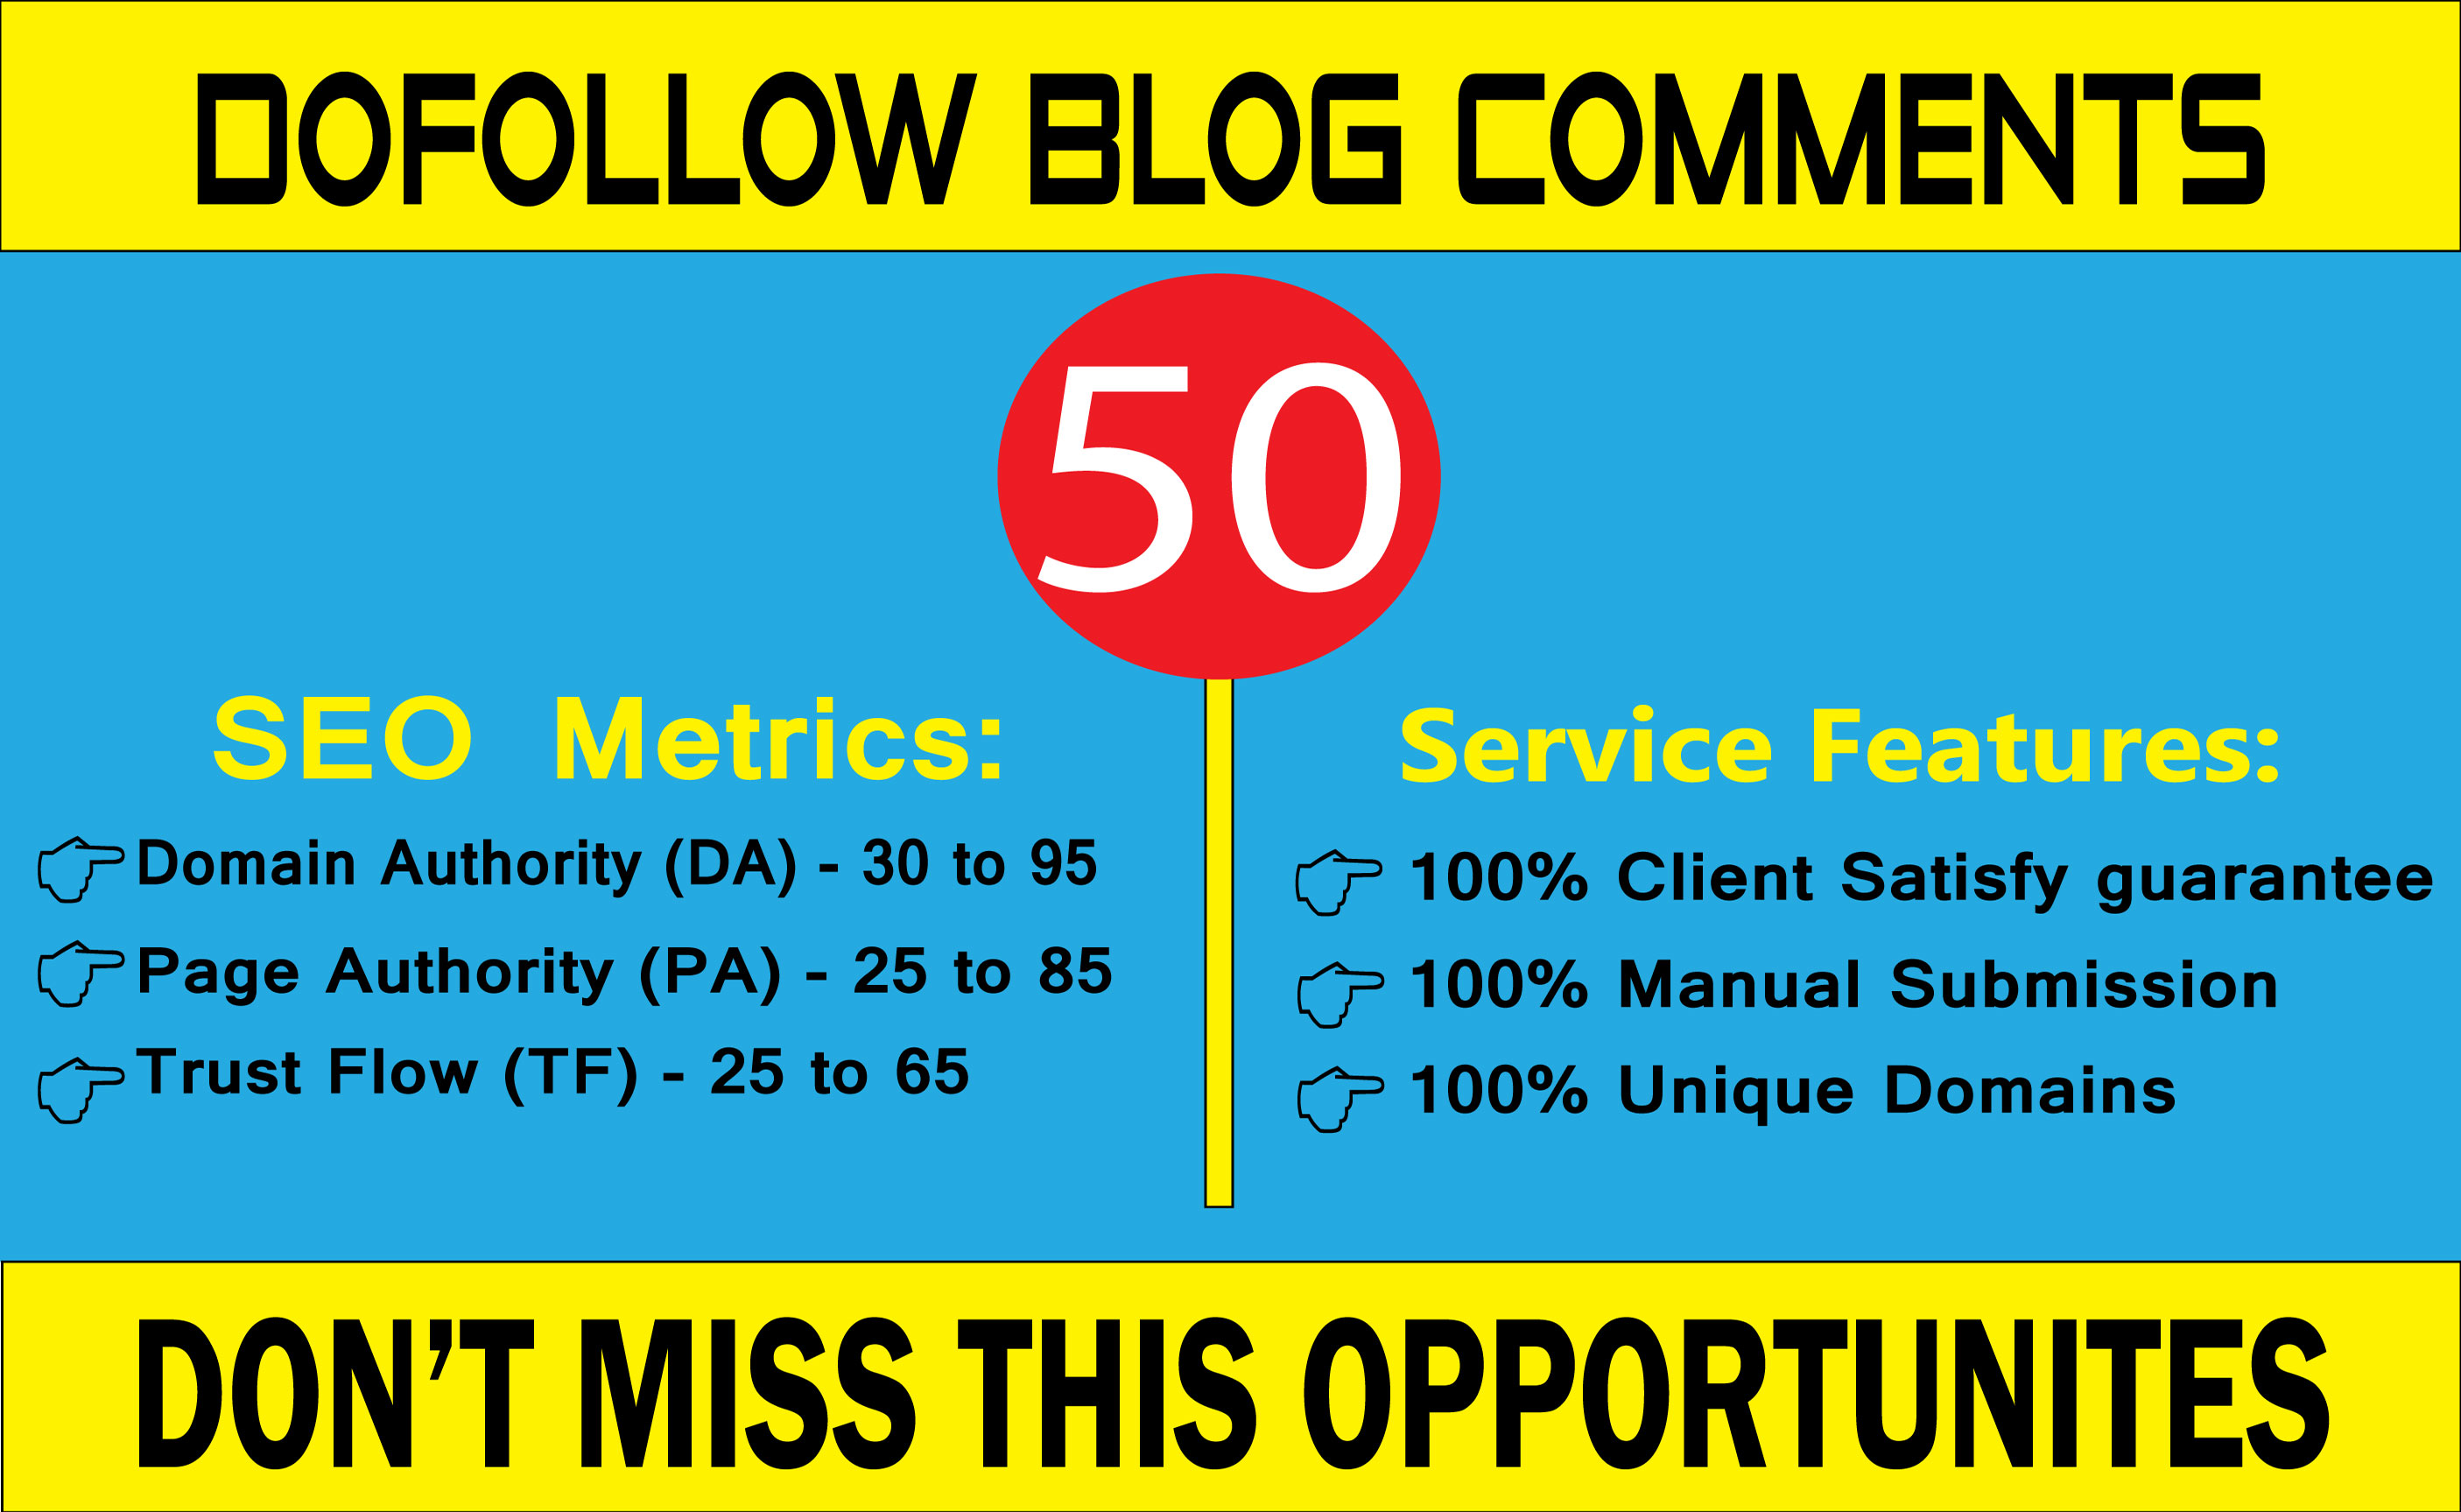 I will create 50 high quality Dofollow blog comments